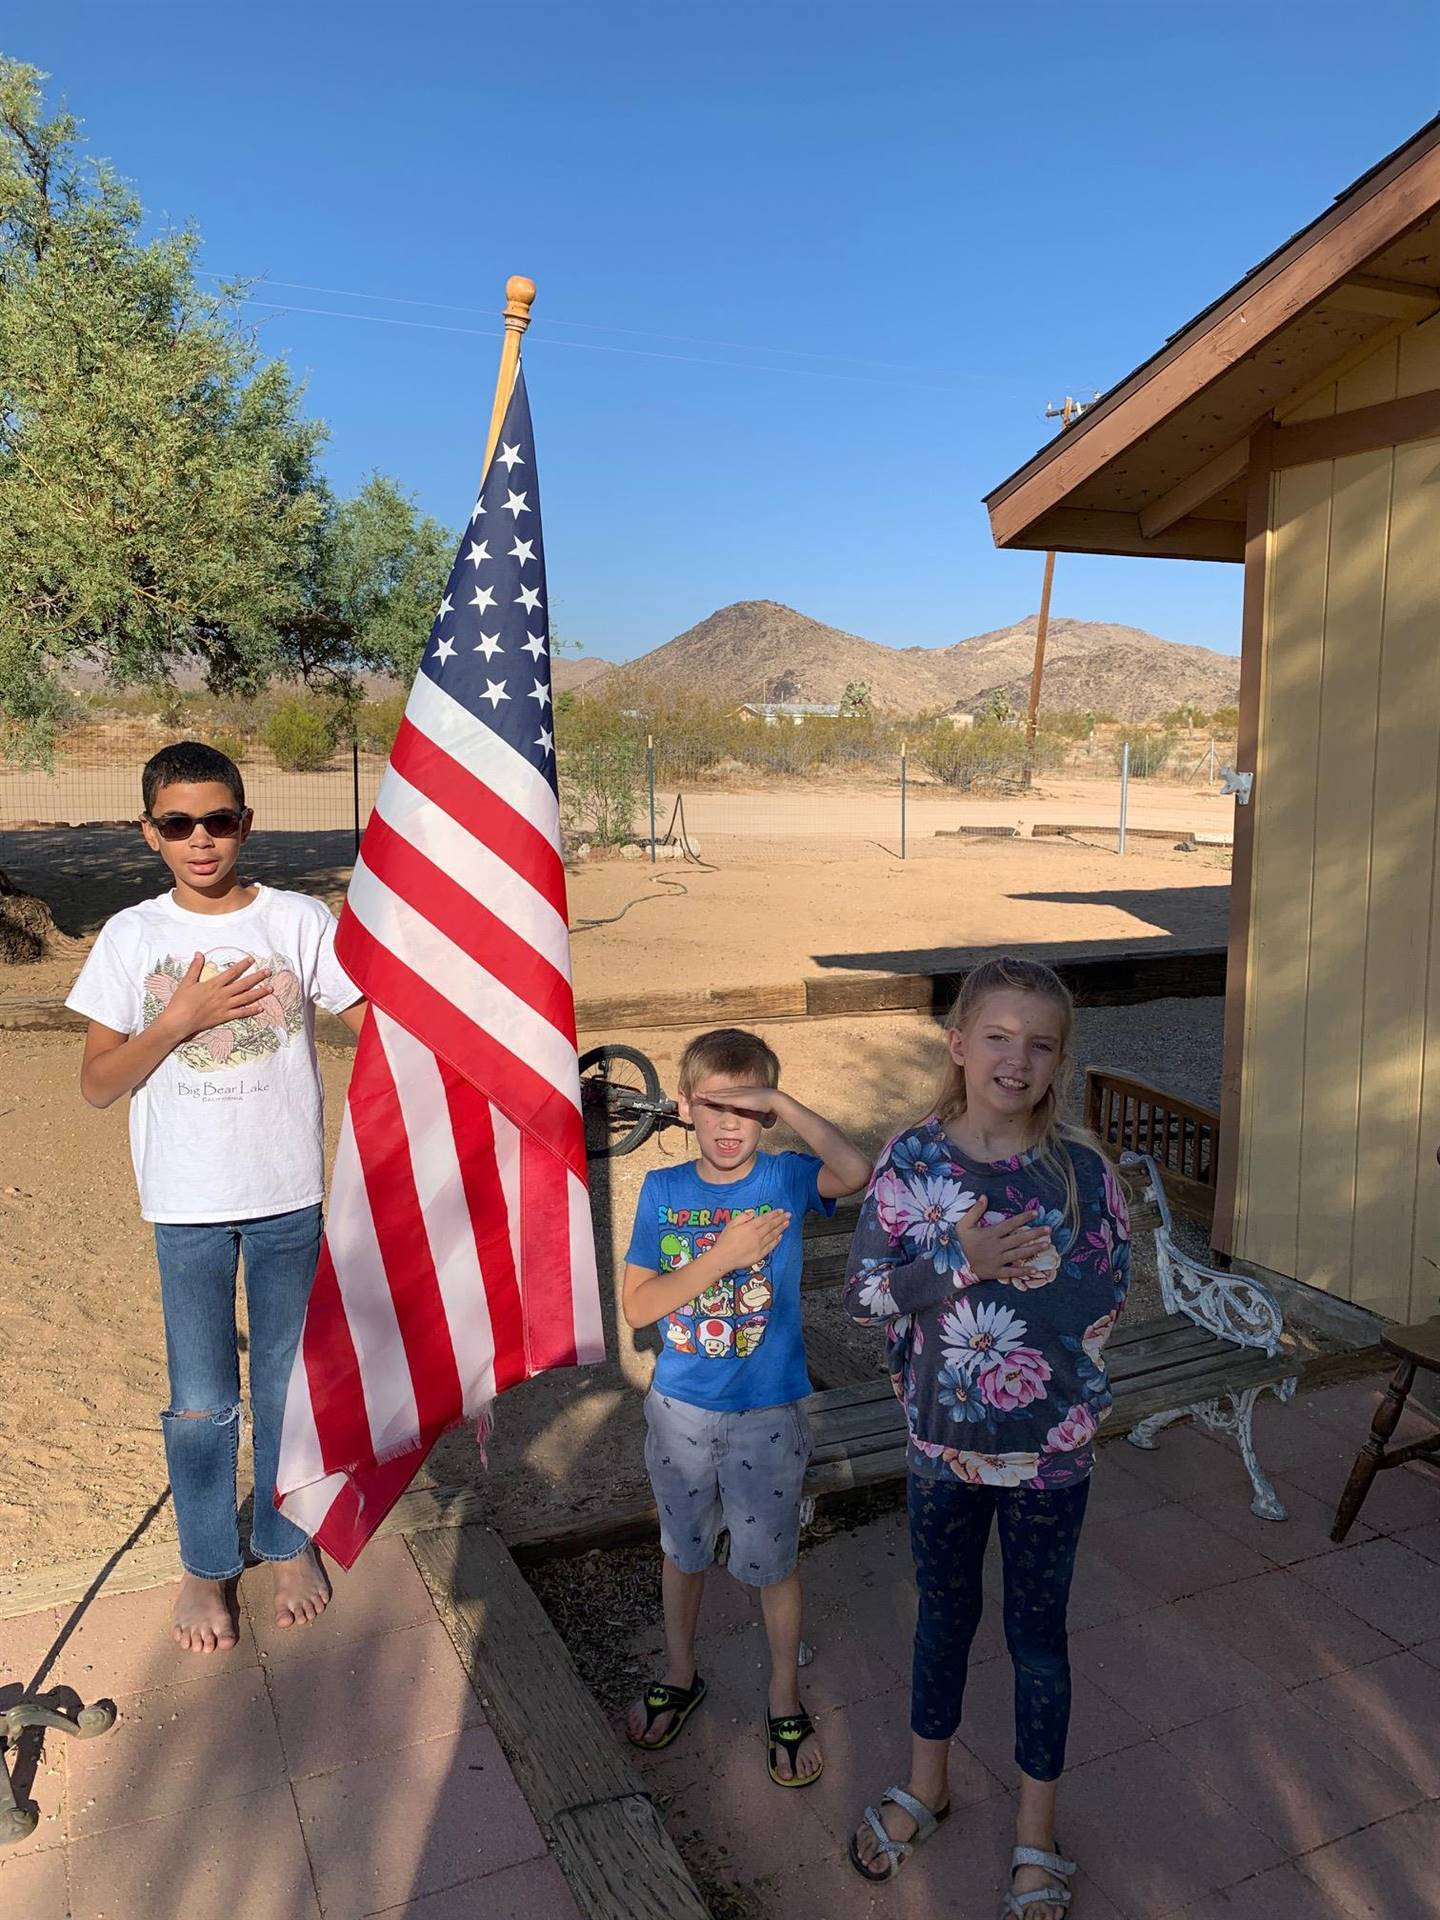 LES students say the Pledge of Allegiance from home